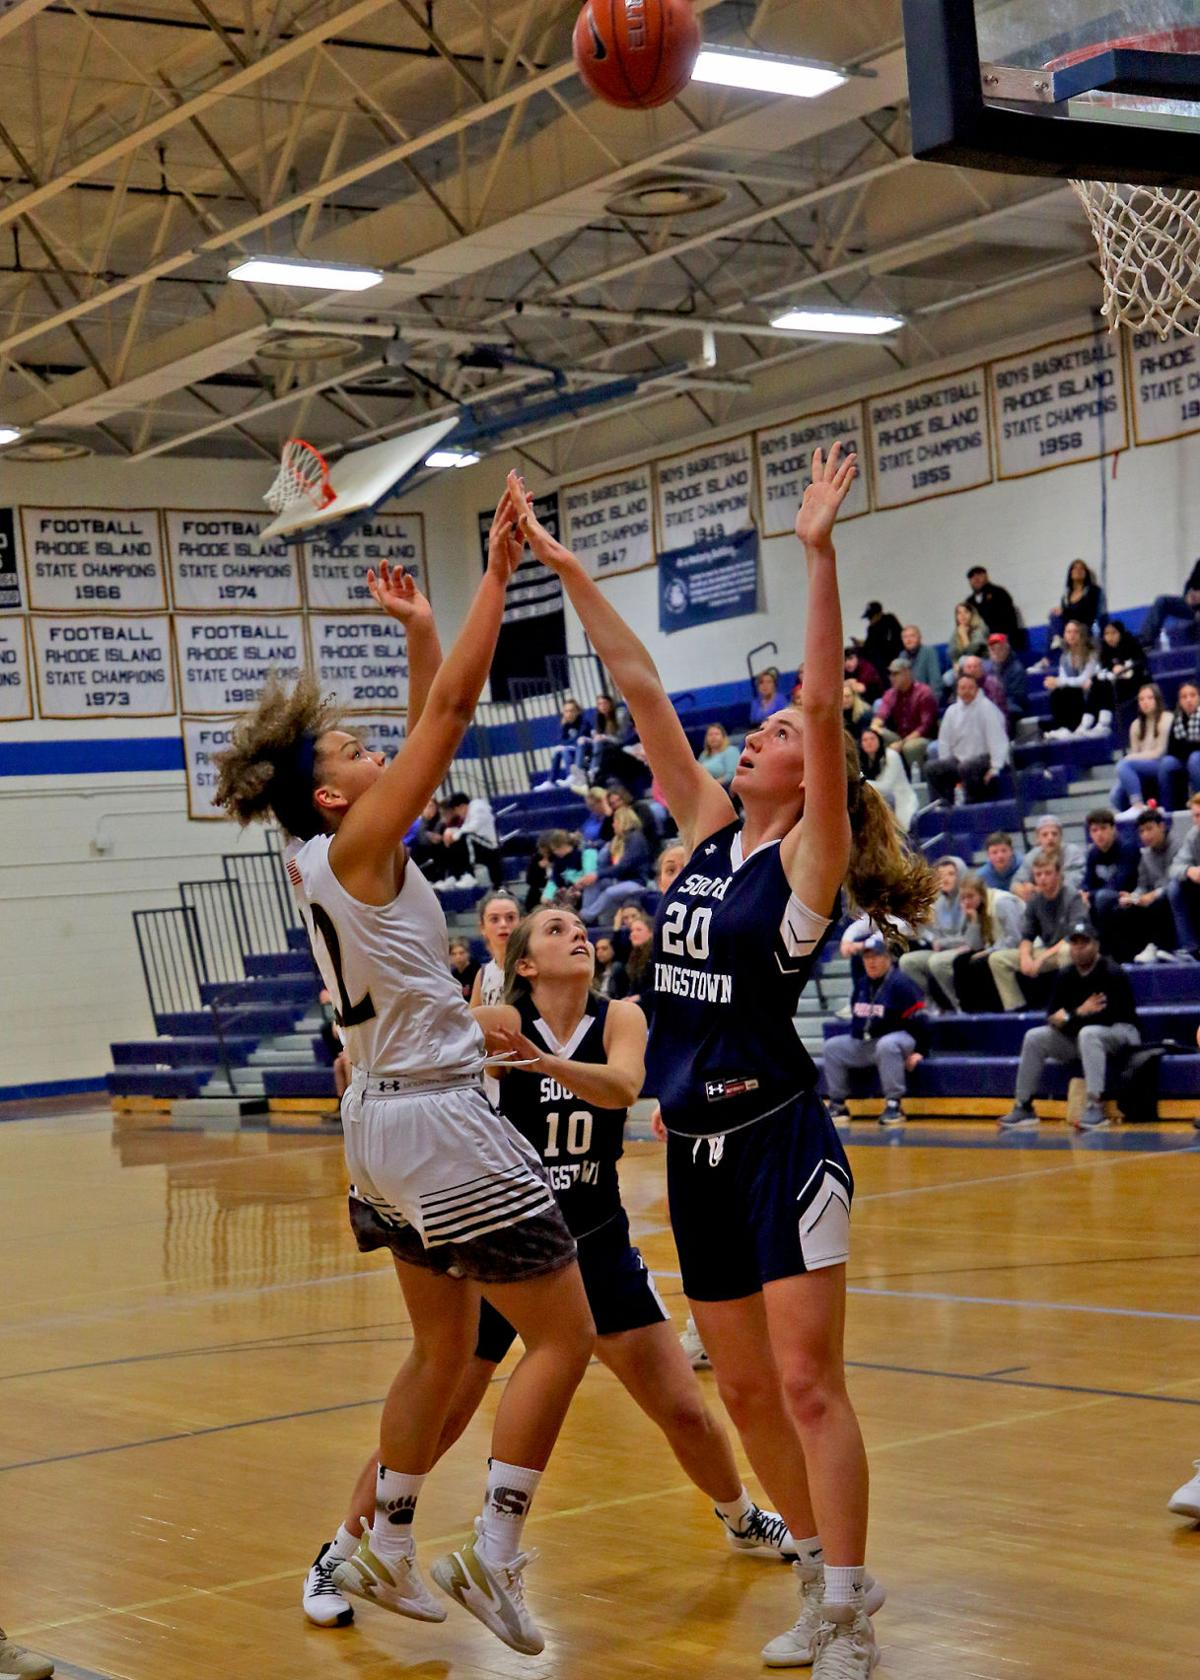 Stonington's Sophia Bell (22) shoots over the head of South Kingstown's Carly Fewlass (20) in the Stonington Bears vs South Kingstown Rebels girls varsity WCCU Holiday Basketball Tournament Championship Game played Saturday evening, December 28, 2019 at Westerly High School. | Jackie L. Turner, Special to The Sun.